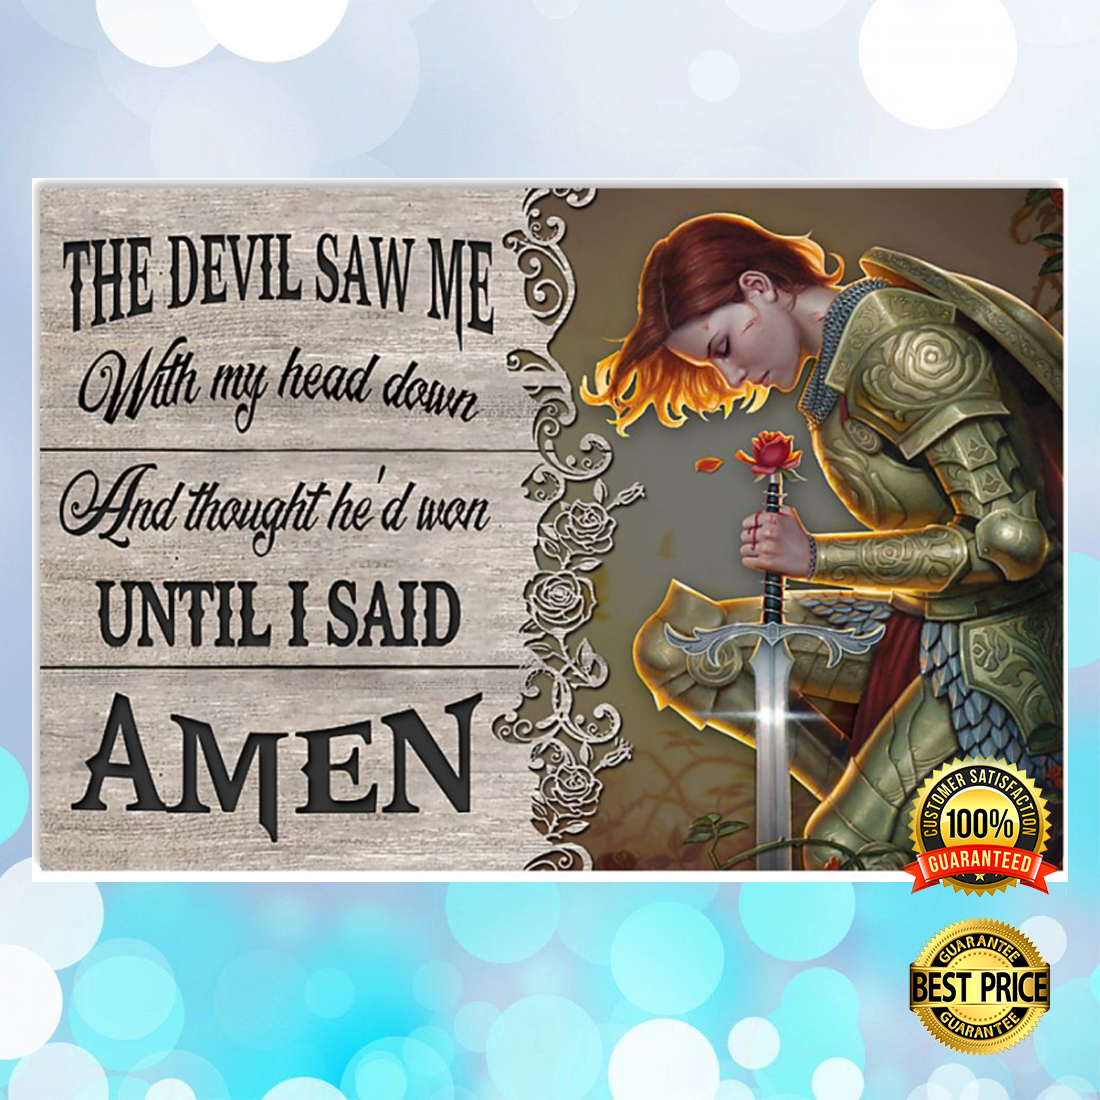 The devil saw me with my head down and thought he'd won until i said amen poster 4